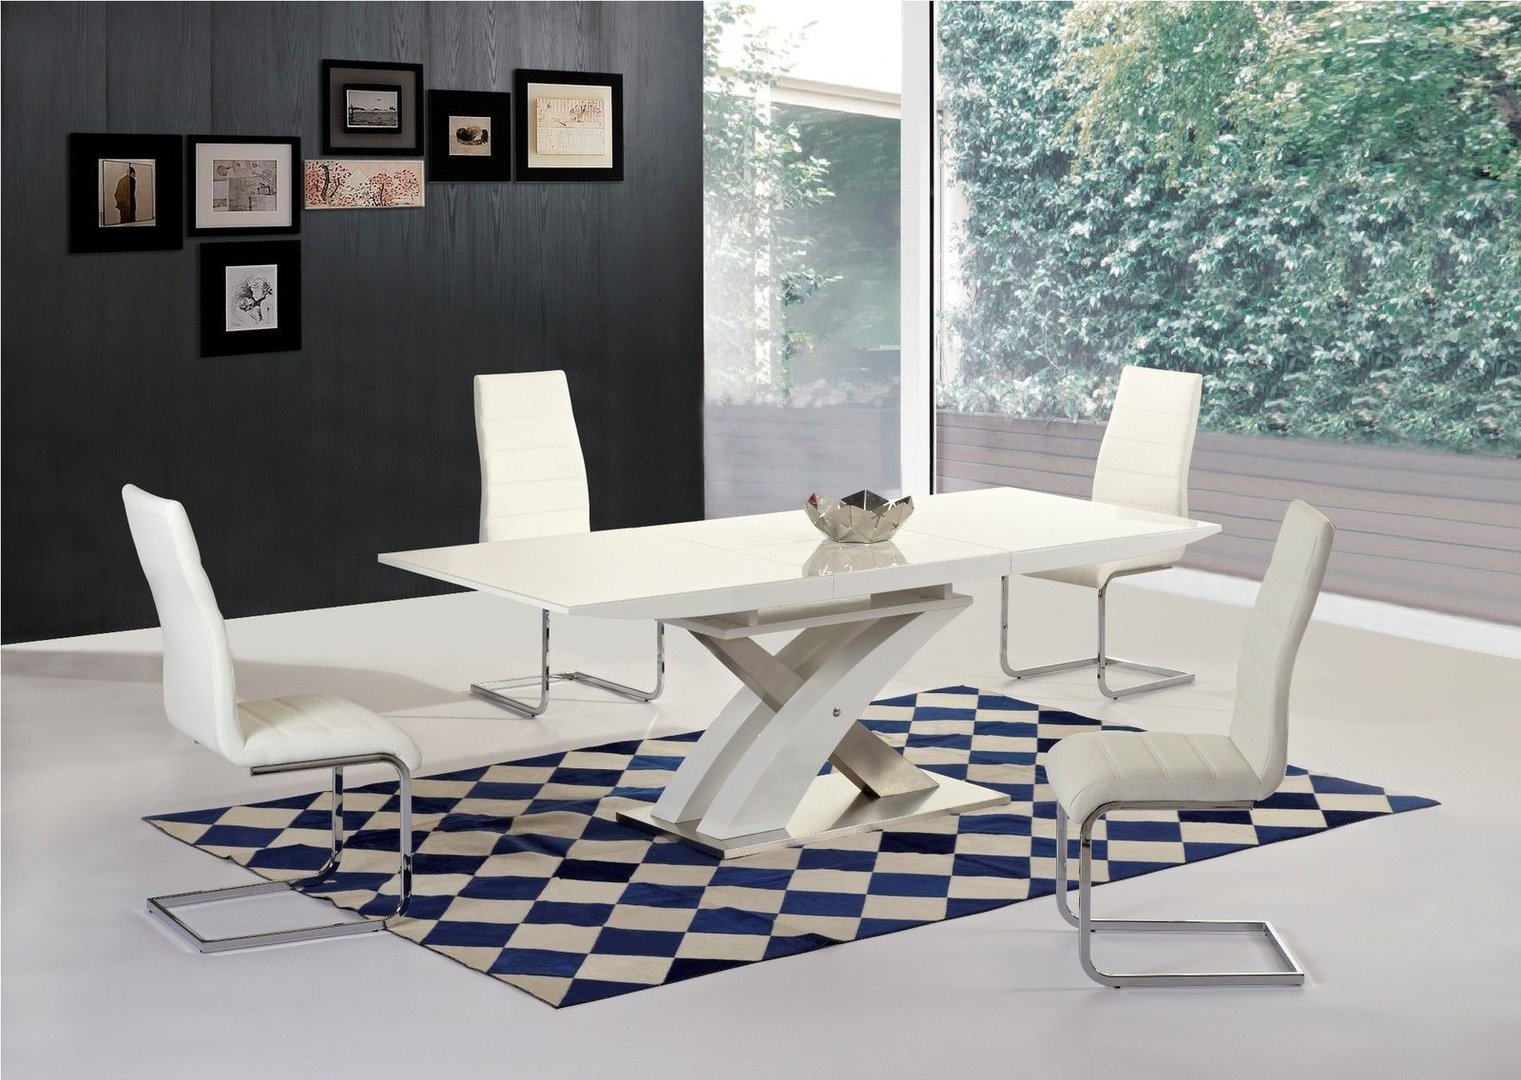 White H Gloss Extending Glass dining table amp 8 chairs  : STYLISHWHITEHIGHGLOSSANDGLASSEXTENDINGDININGTABLEAND8WHITECHAIRS from www.homegenies.co.uk size 1521 x 1080 jpeg 262kB